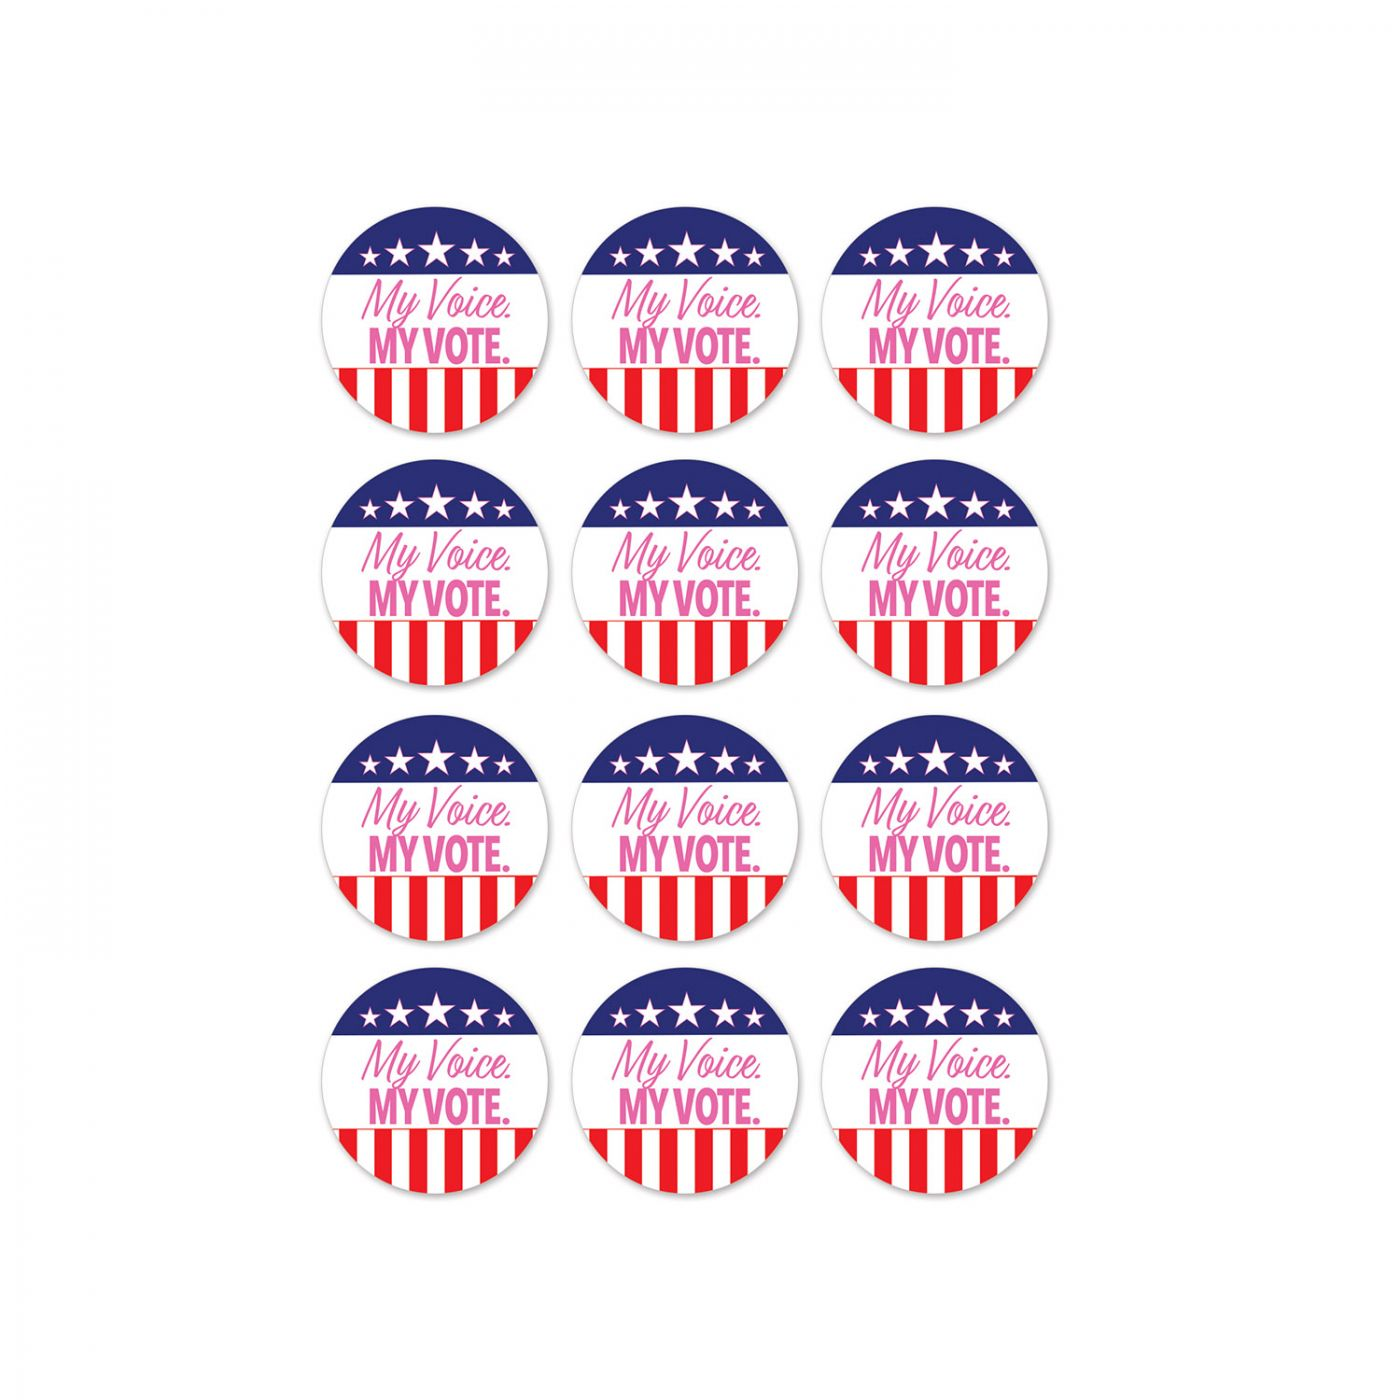 My Voice. My Vote. Stickers image